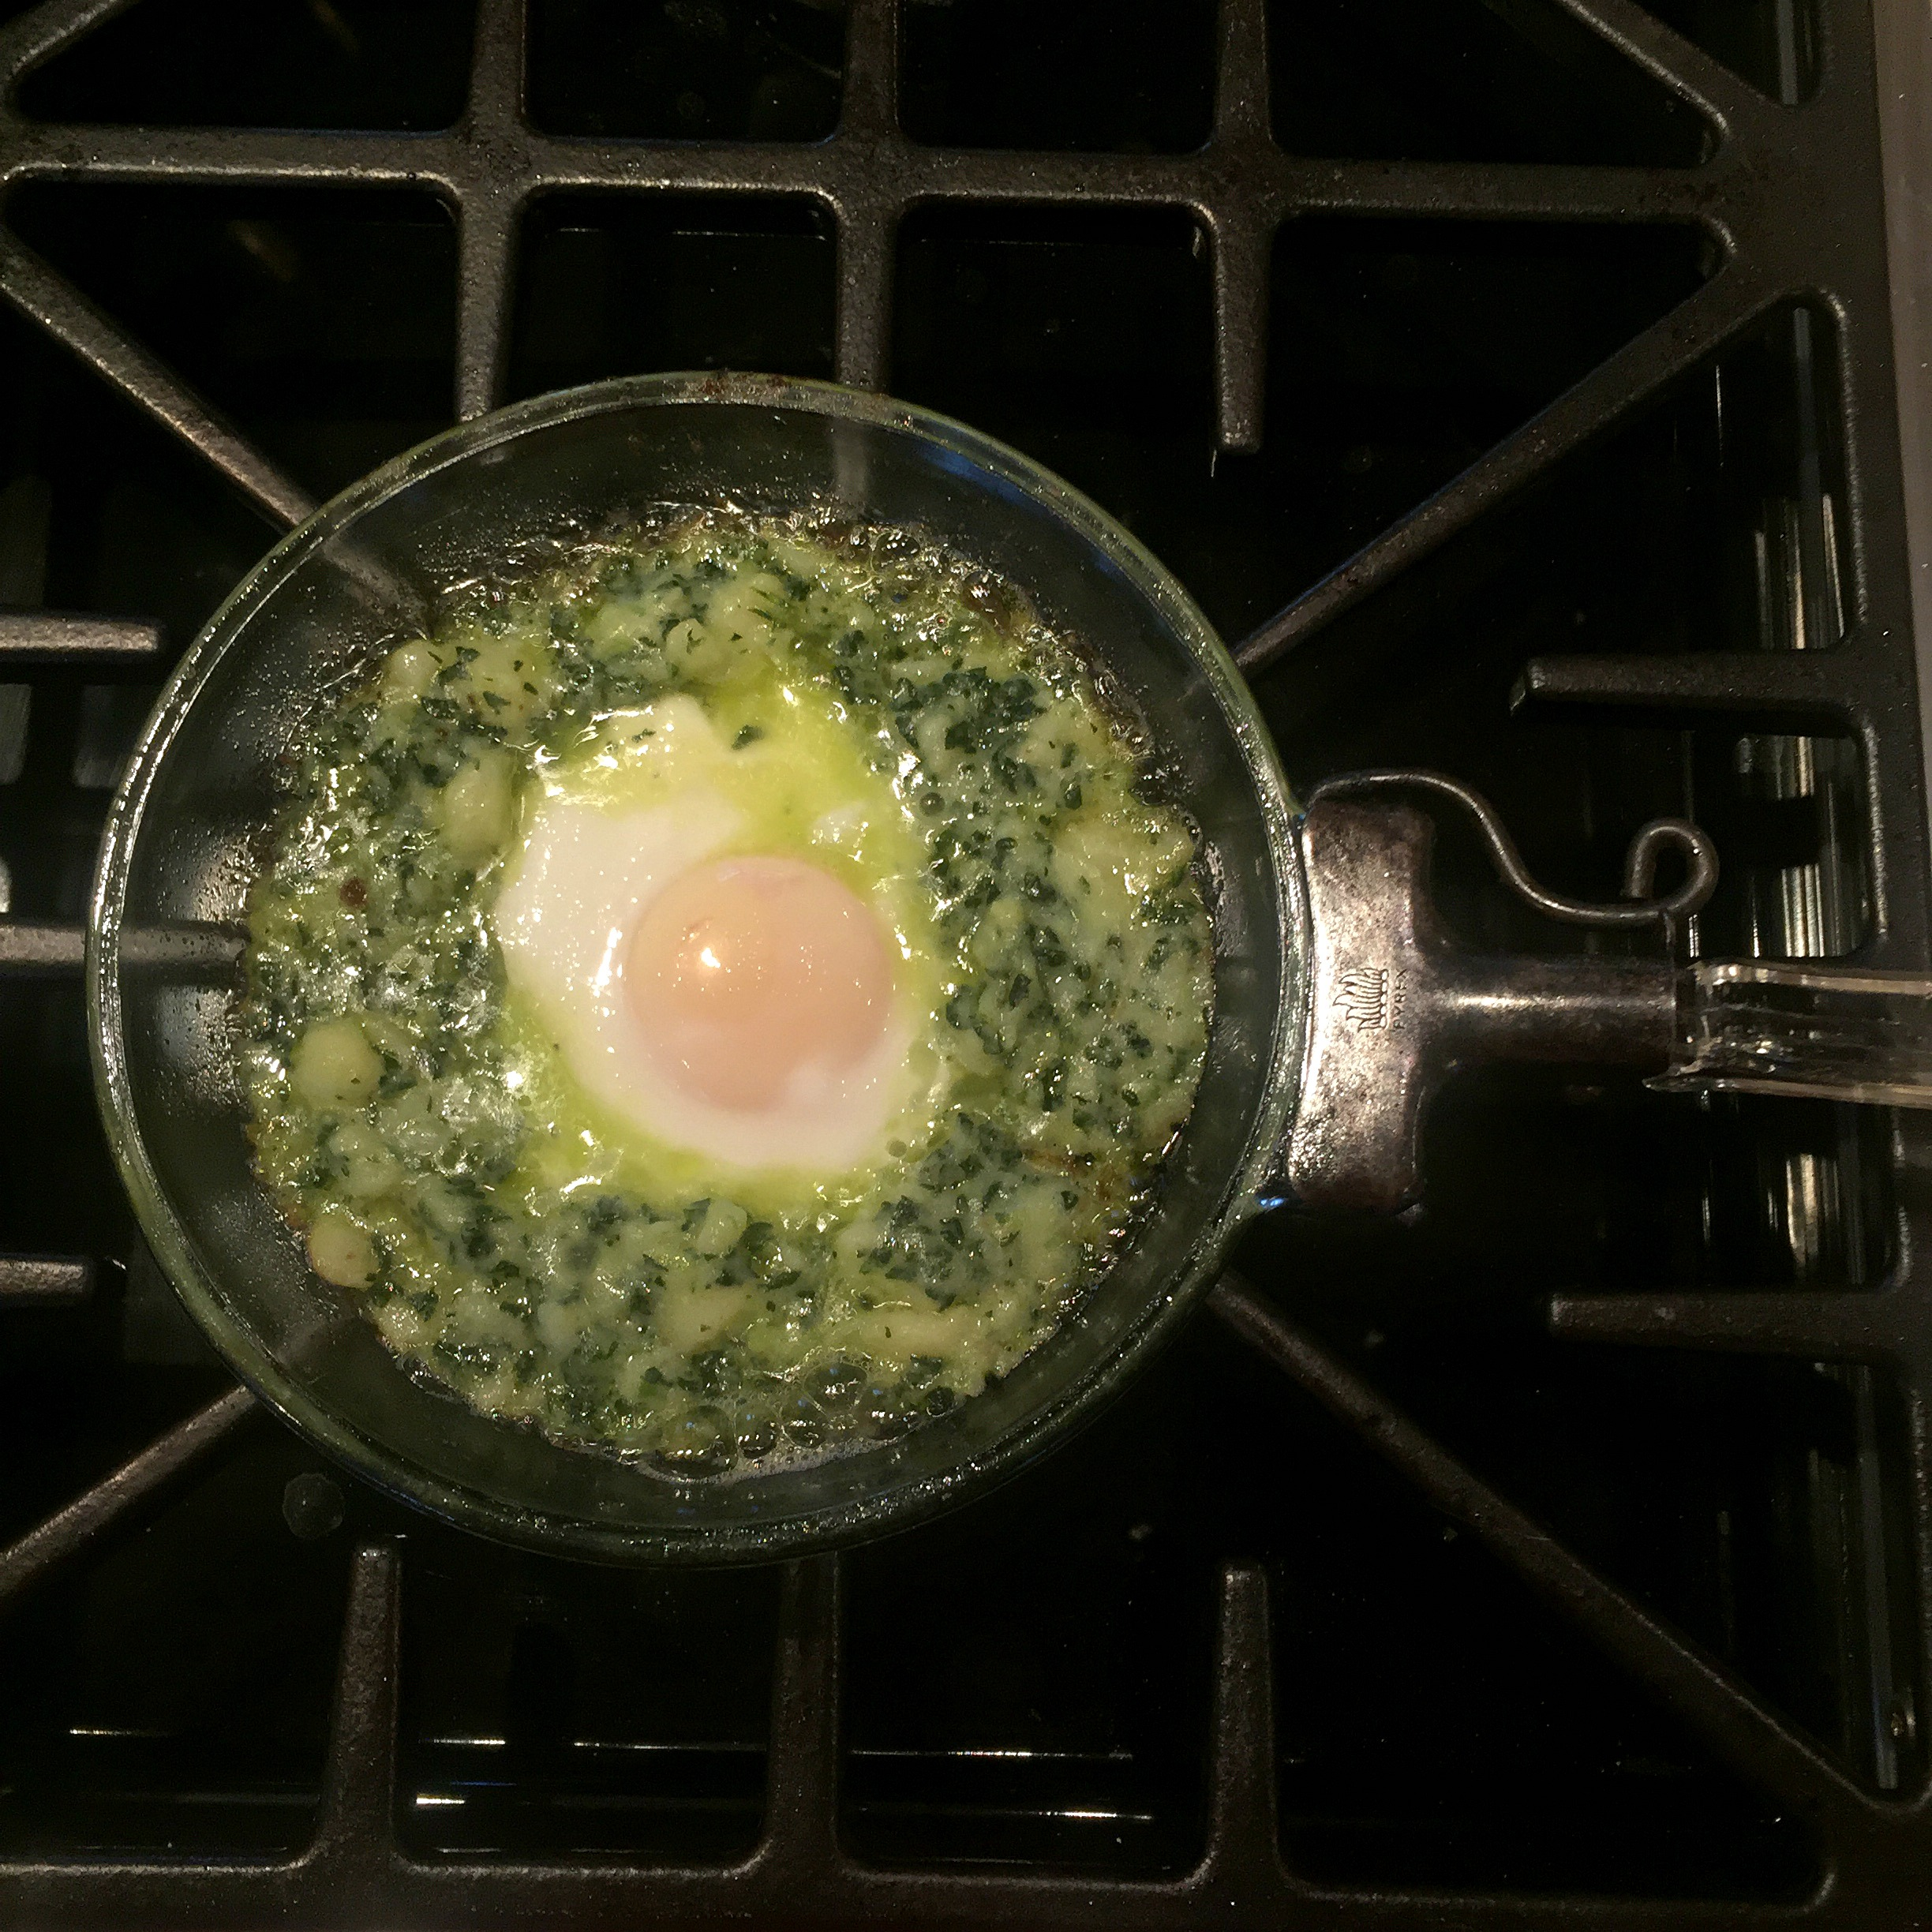 Colcannon with Potatoes, Kale and Spring Onions